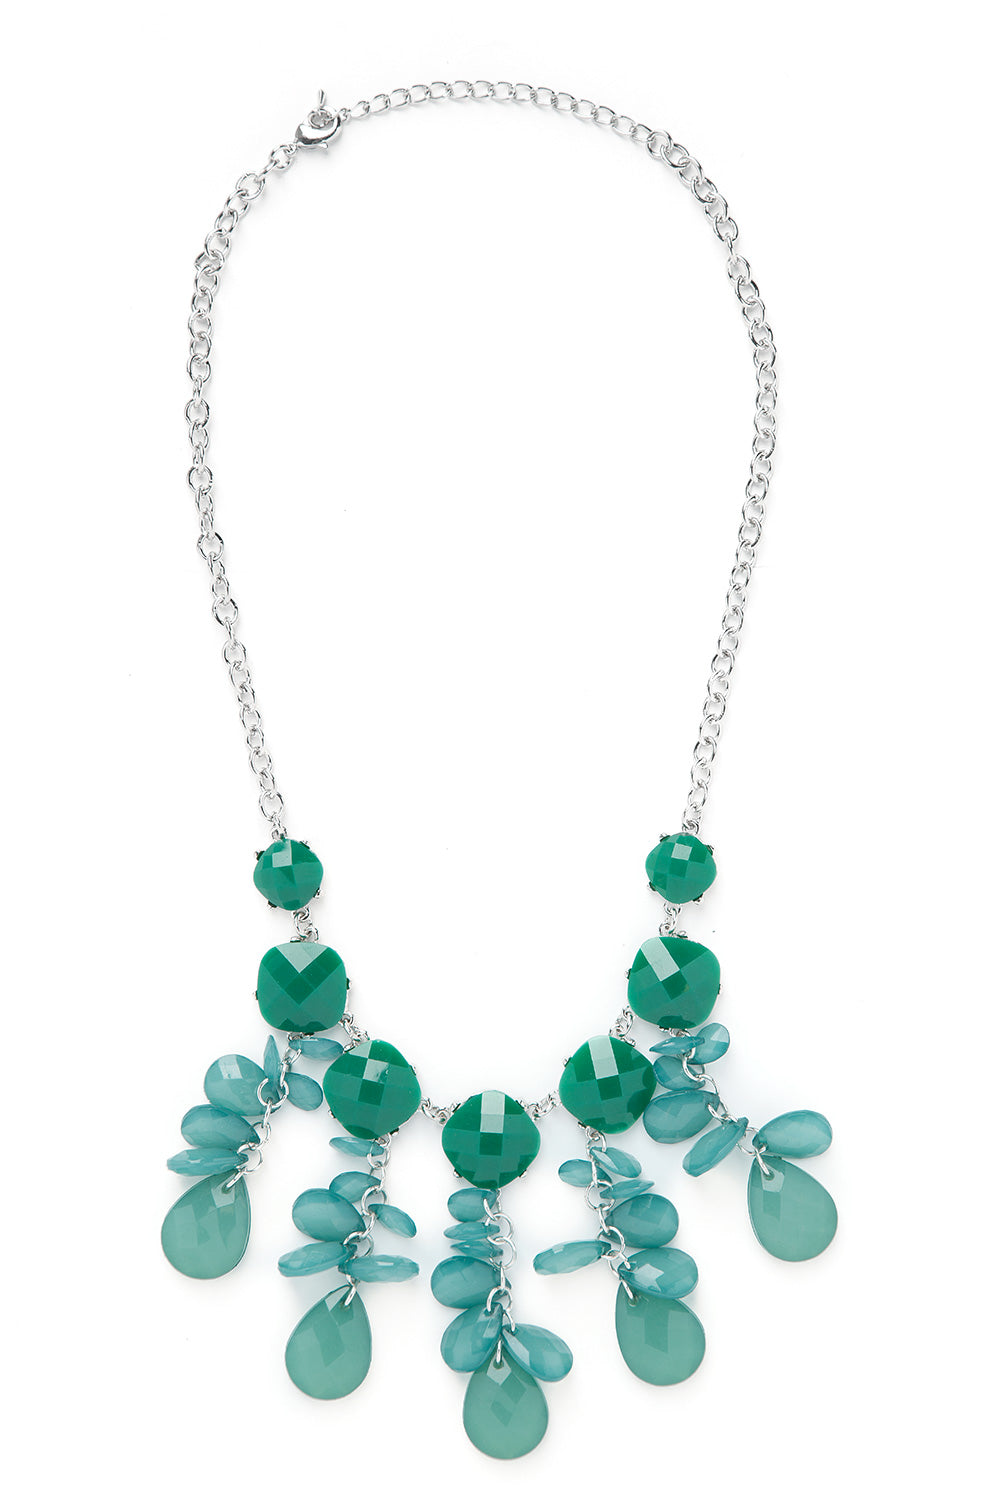 Type 2 Clustered at Home Necklace in Green